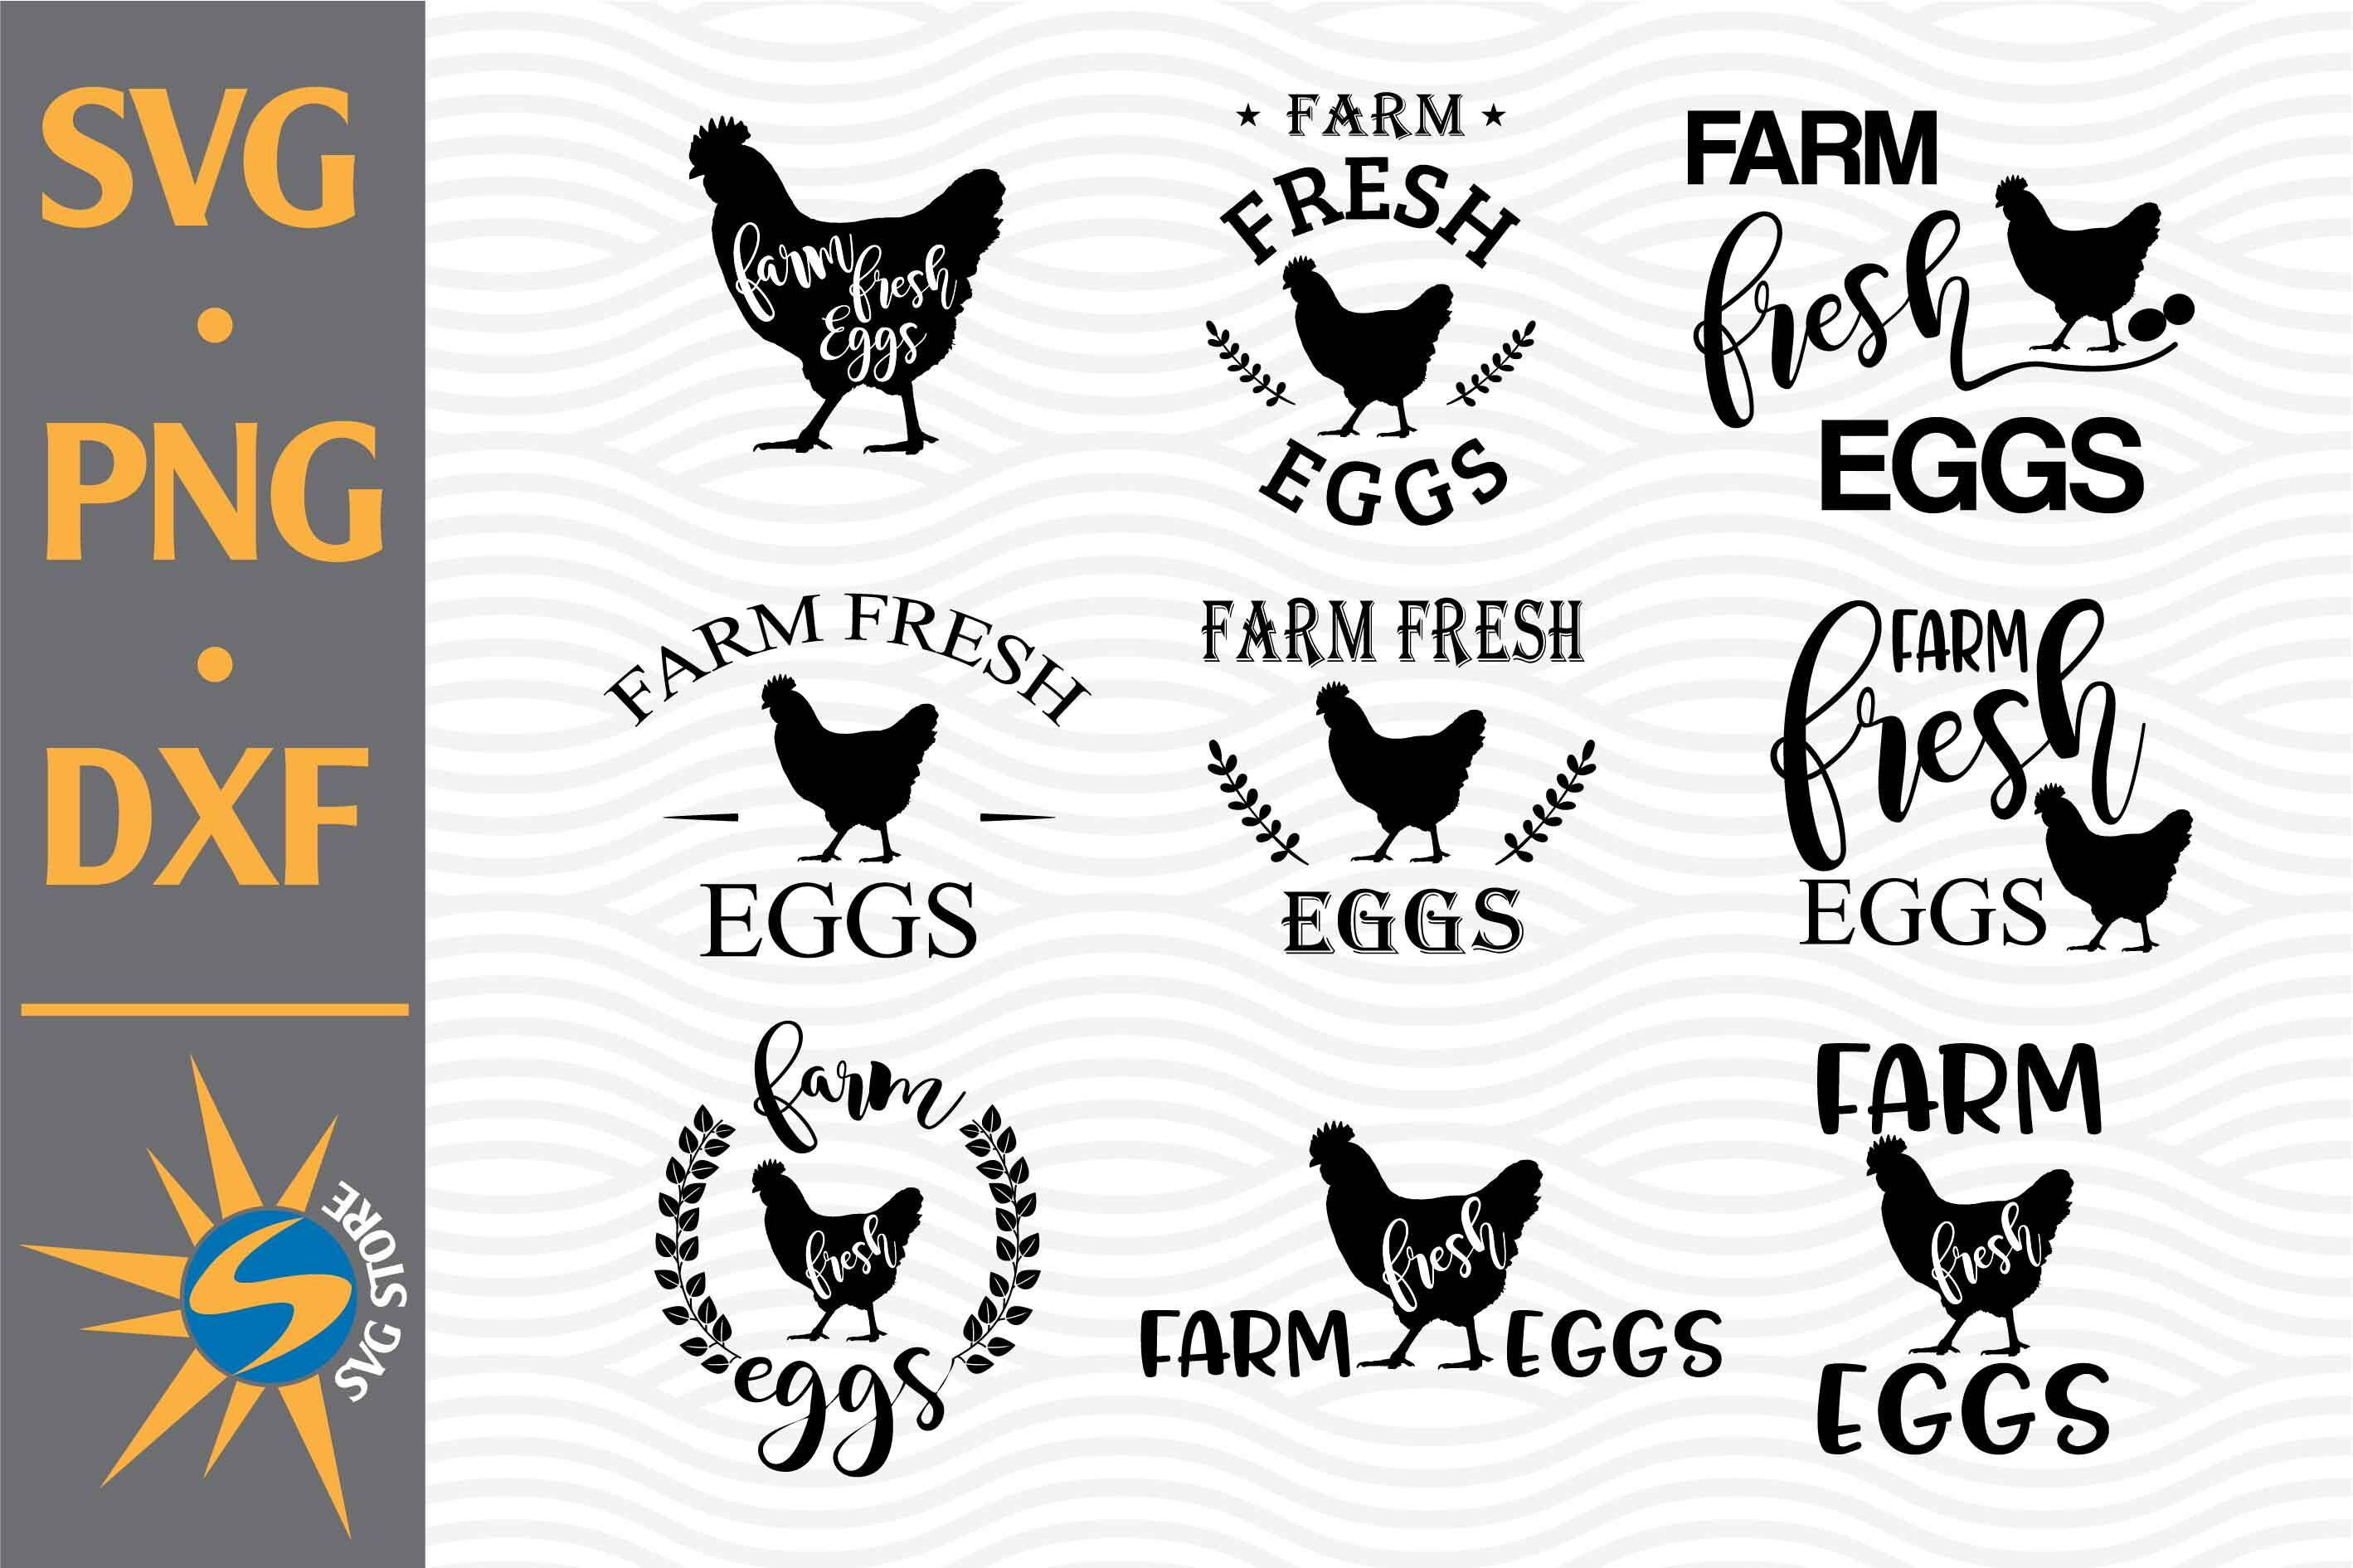 Farm Fresh Eggs Svg Png Dxf Digital Files Include By Svgstoreshop Thehungryjpeg Com